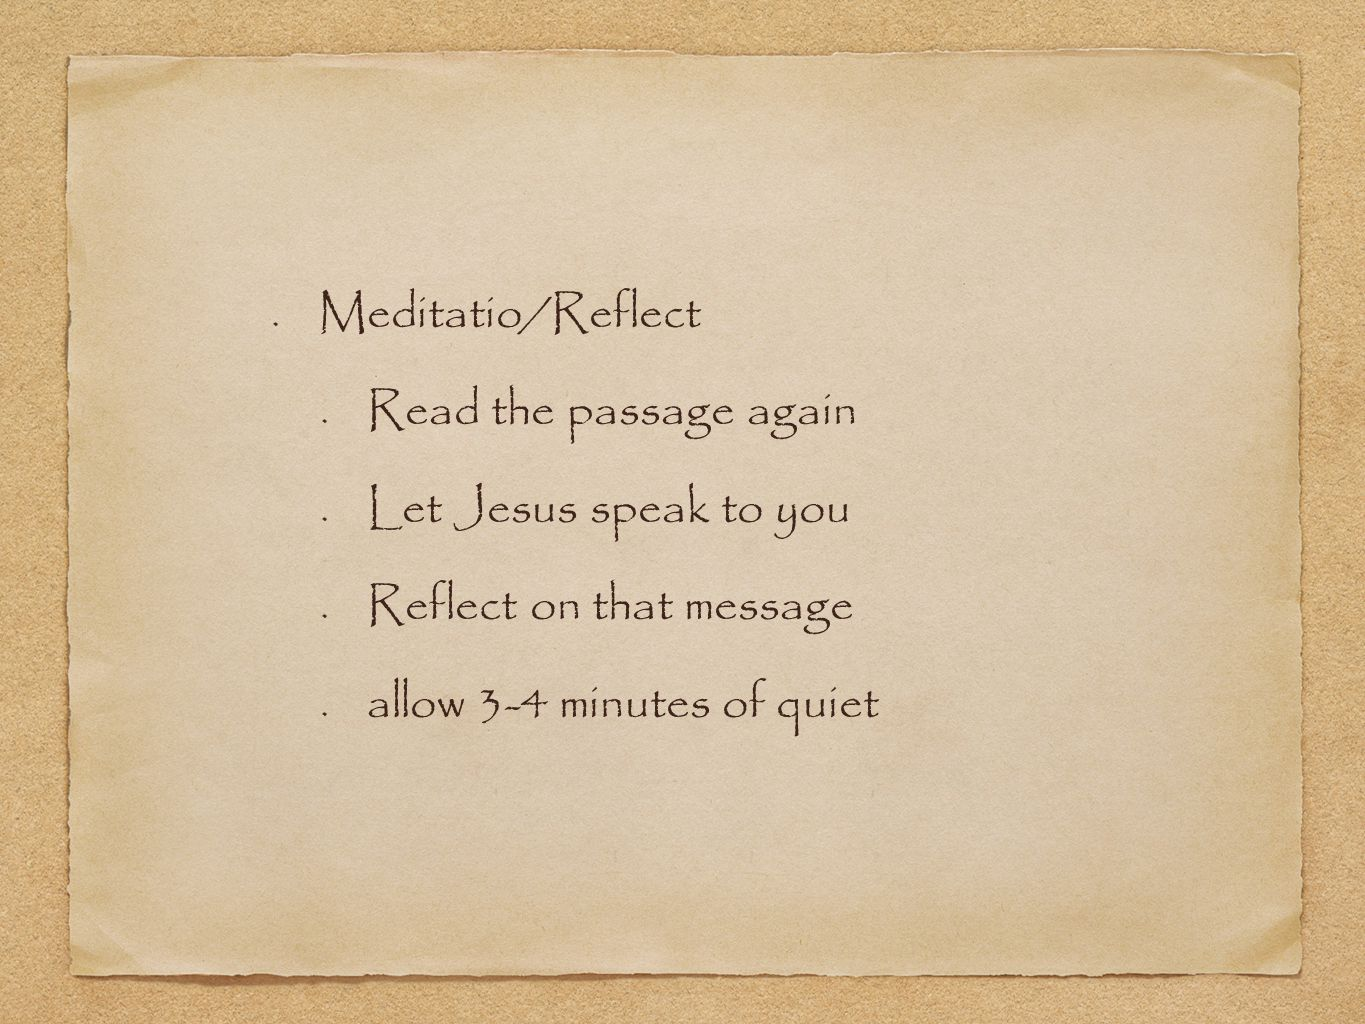 Meditatio/Reflect Read the passage again Let Jesus speak to you Reflect on that message allow 3-4 minutes of quiet